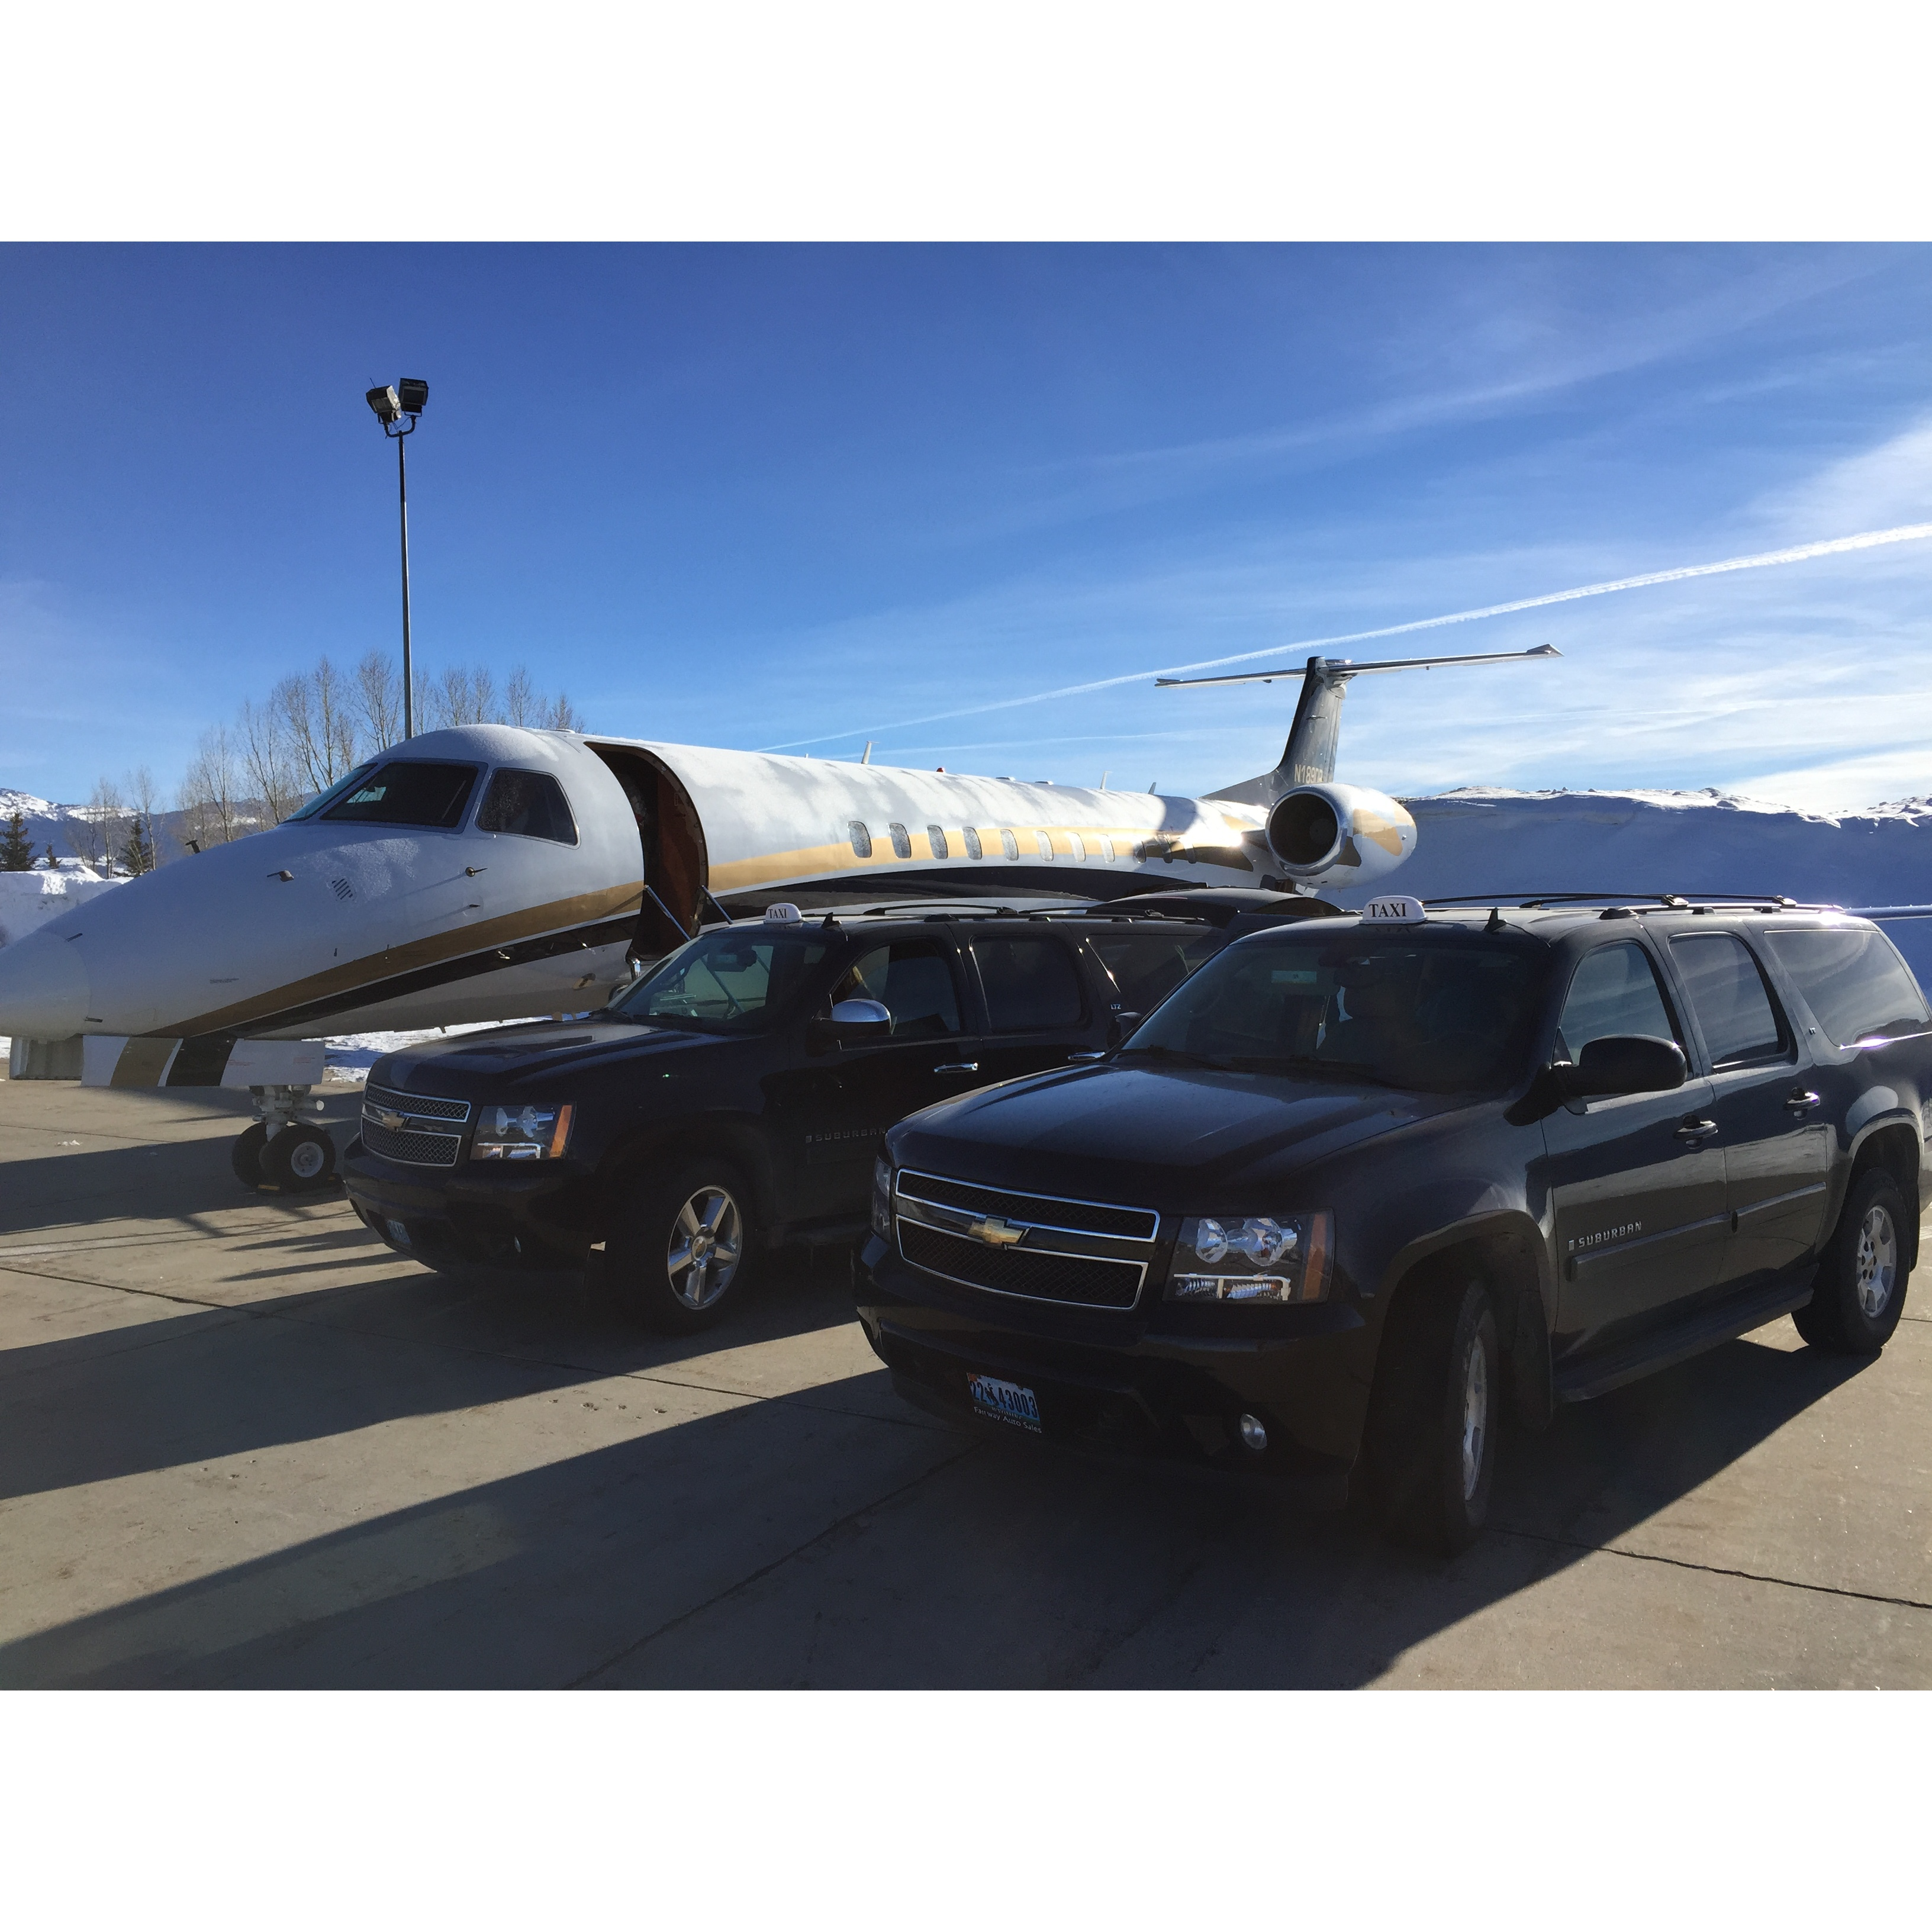 UVC Transportation - Jackson, WY - Taxi Cabs & Limo Rental